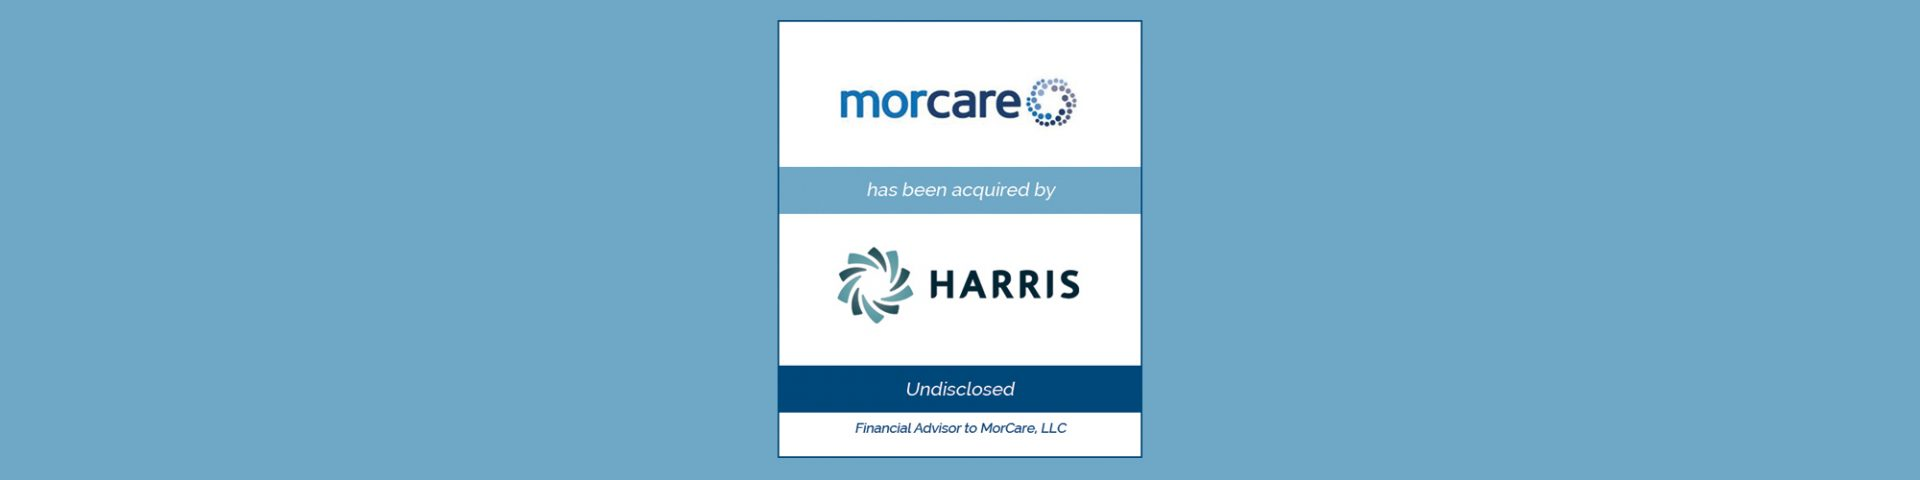 Harris Healthcare Acquires MorCare | Bailey Southwell & Co.